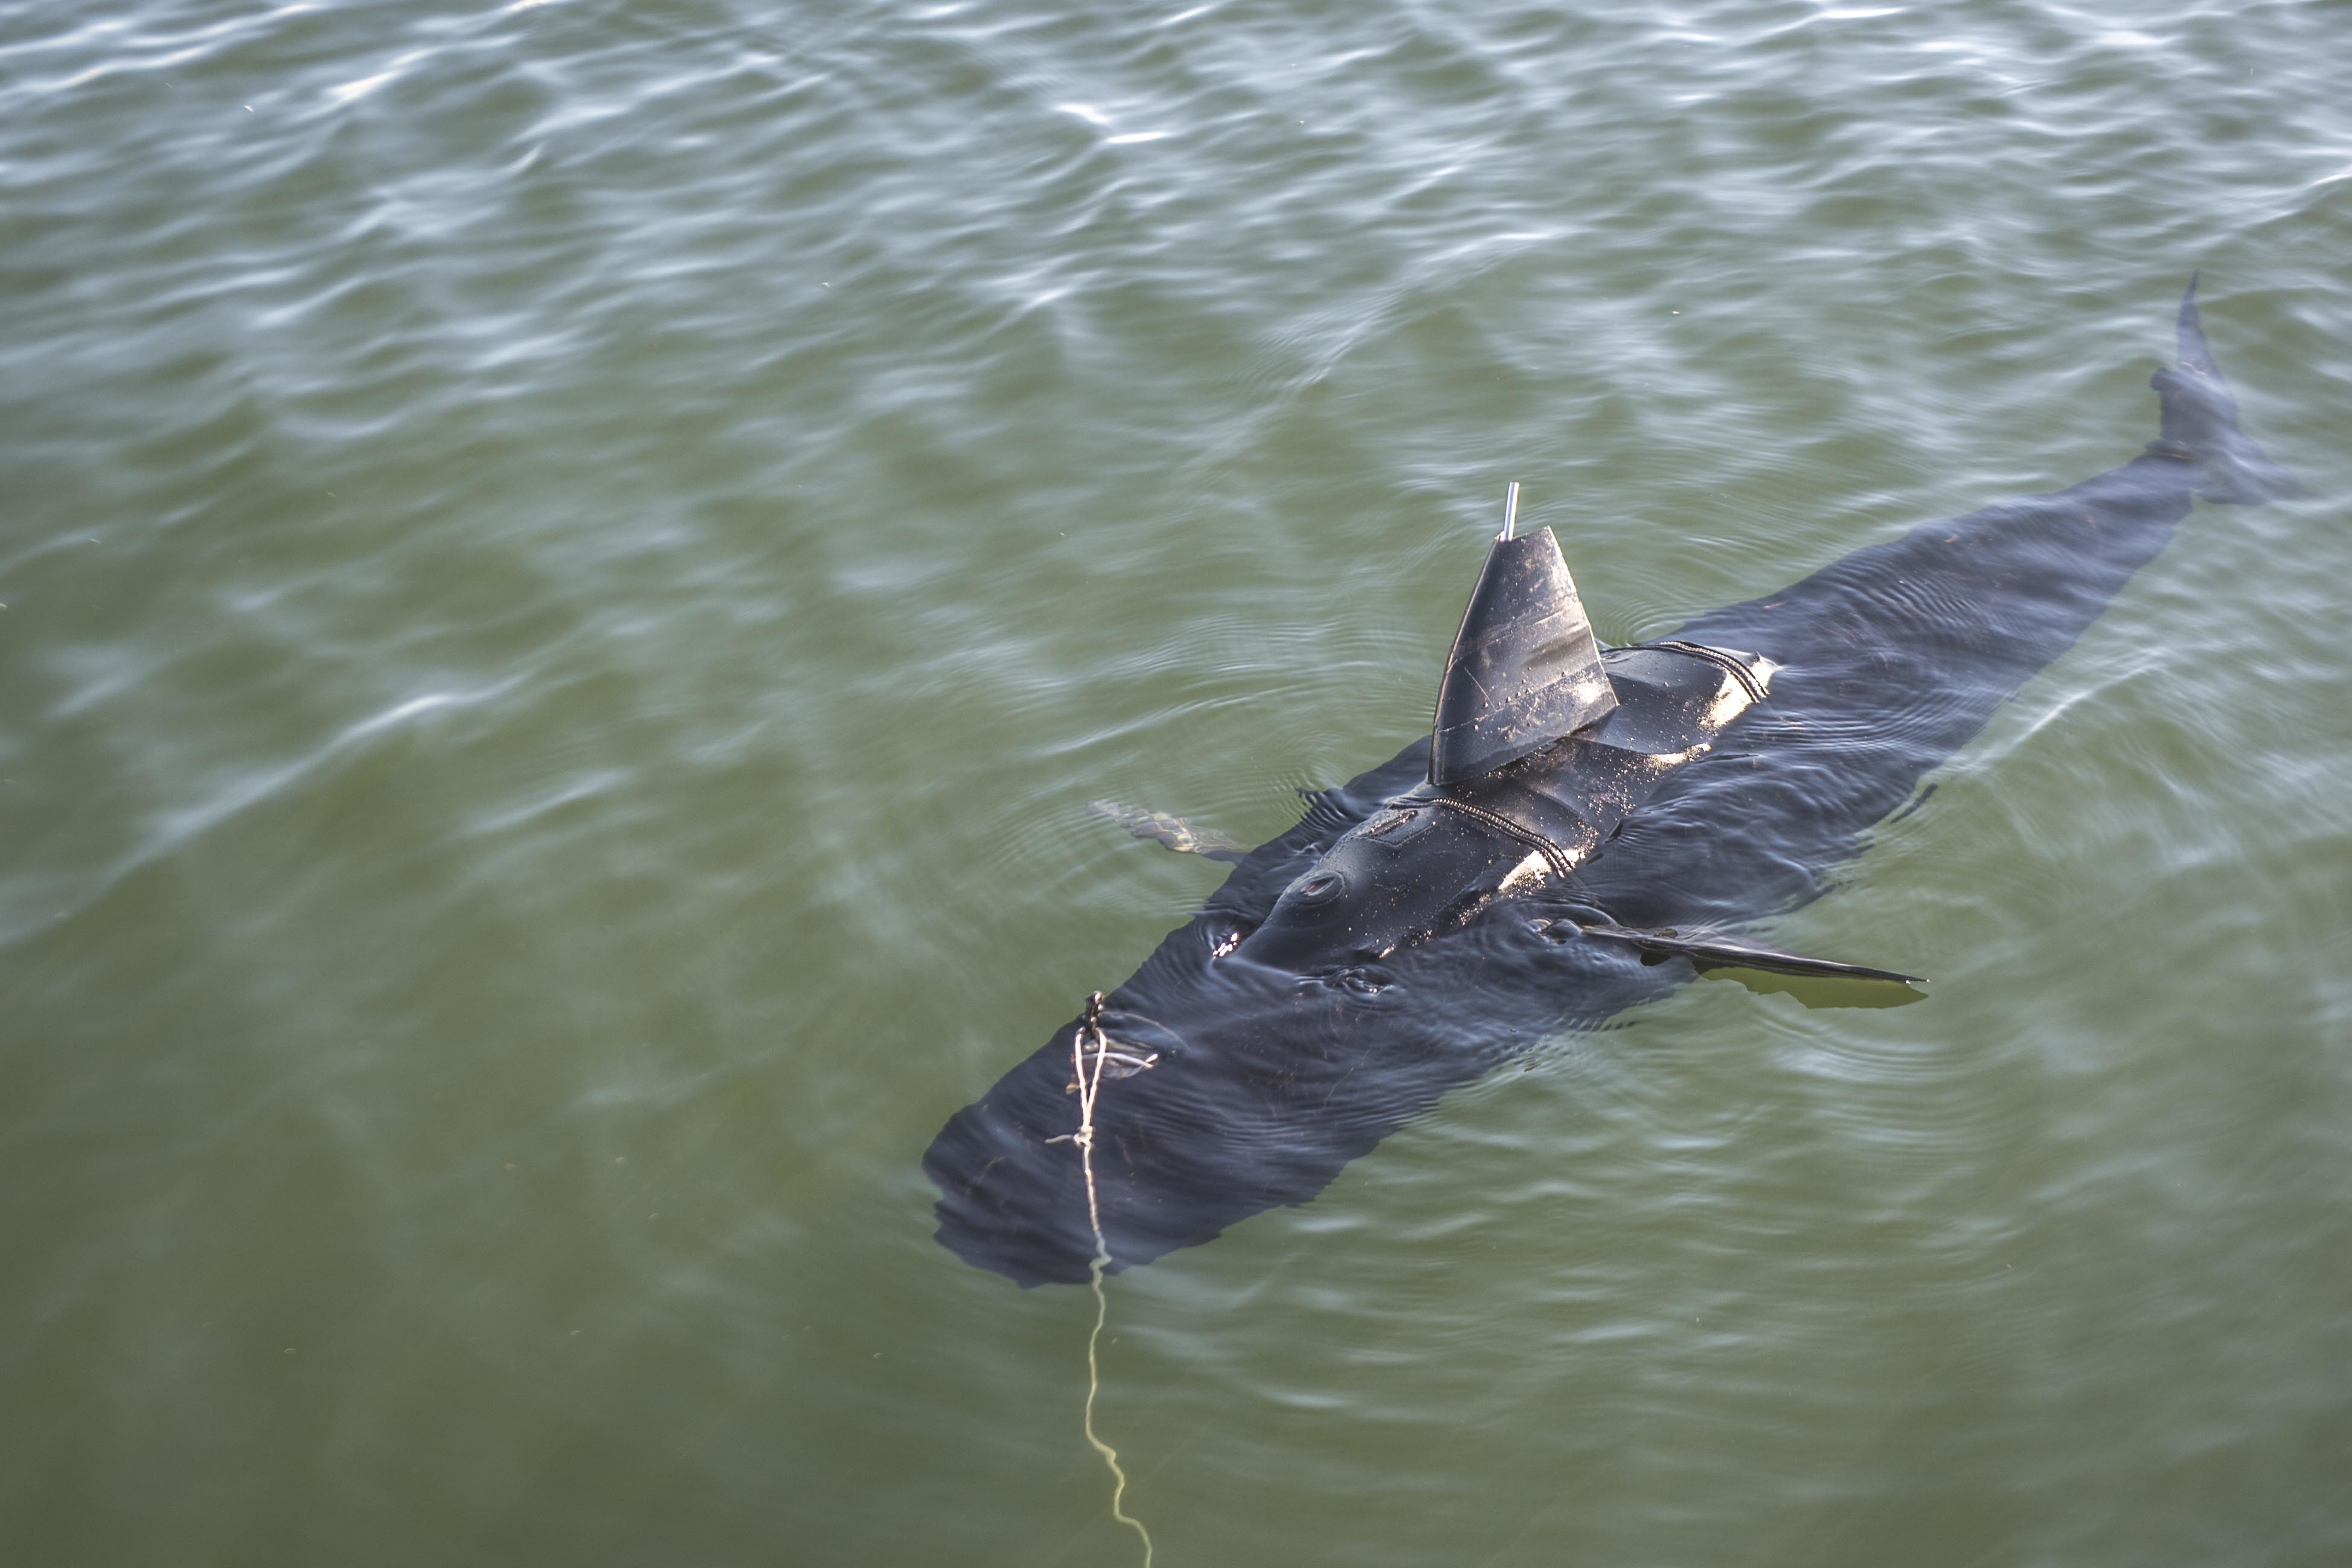 The Navy's New Drone Looks and Swims Like a Shark!